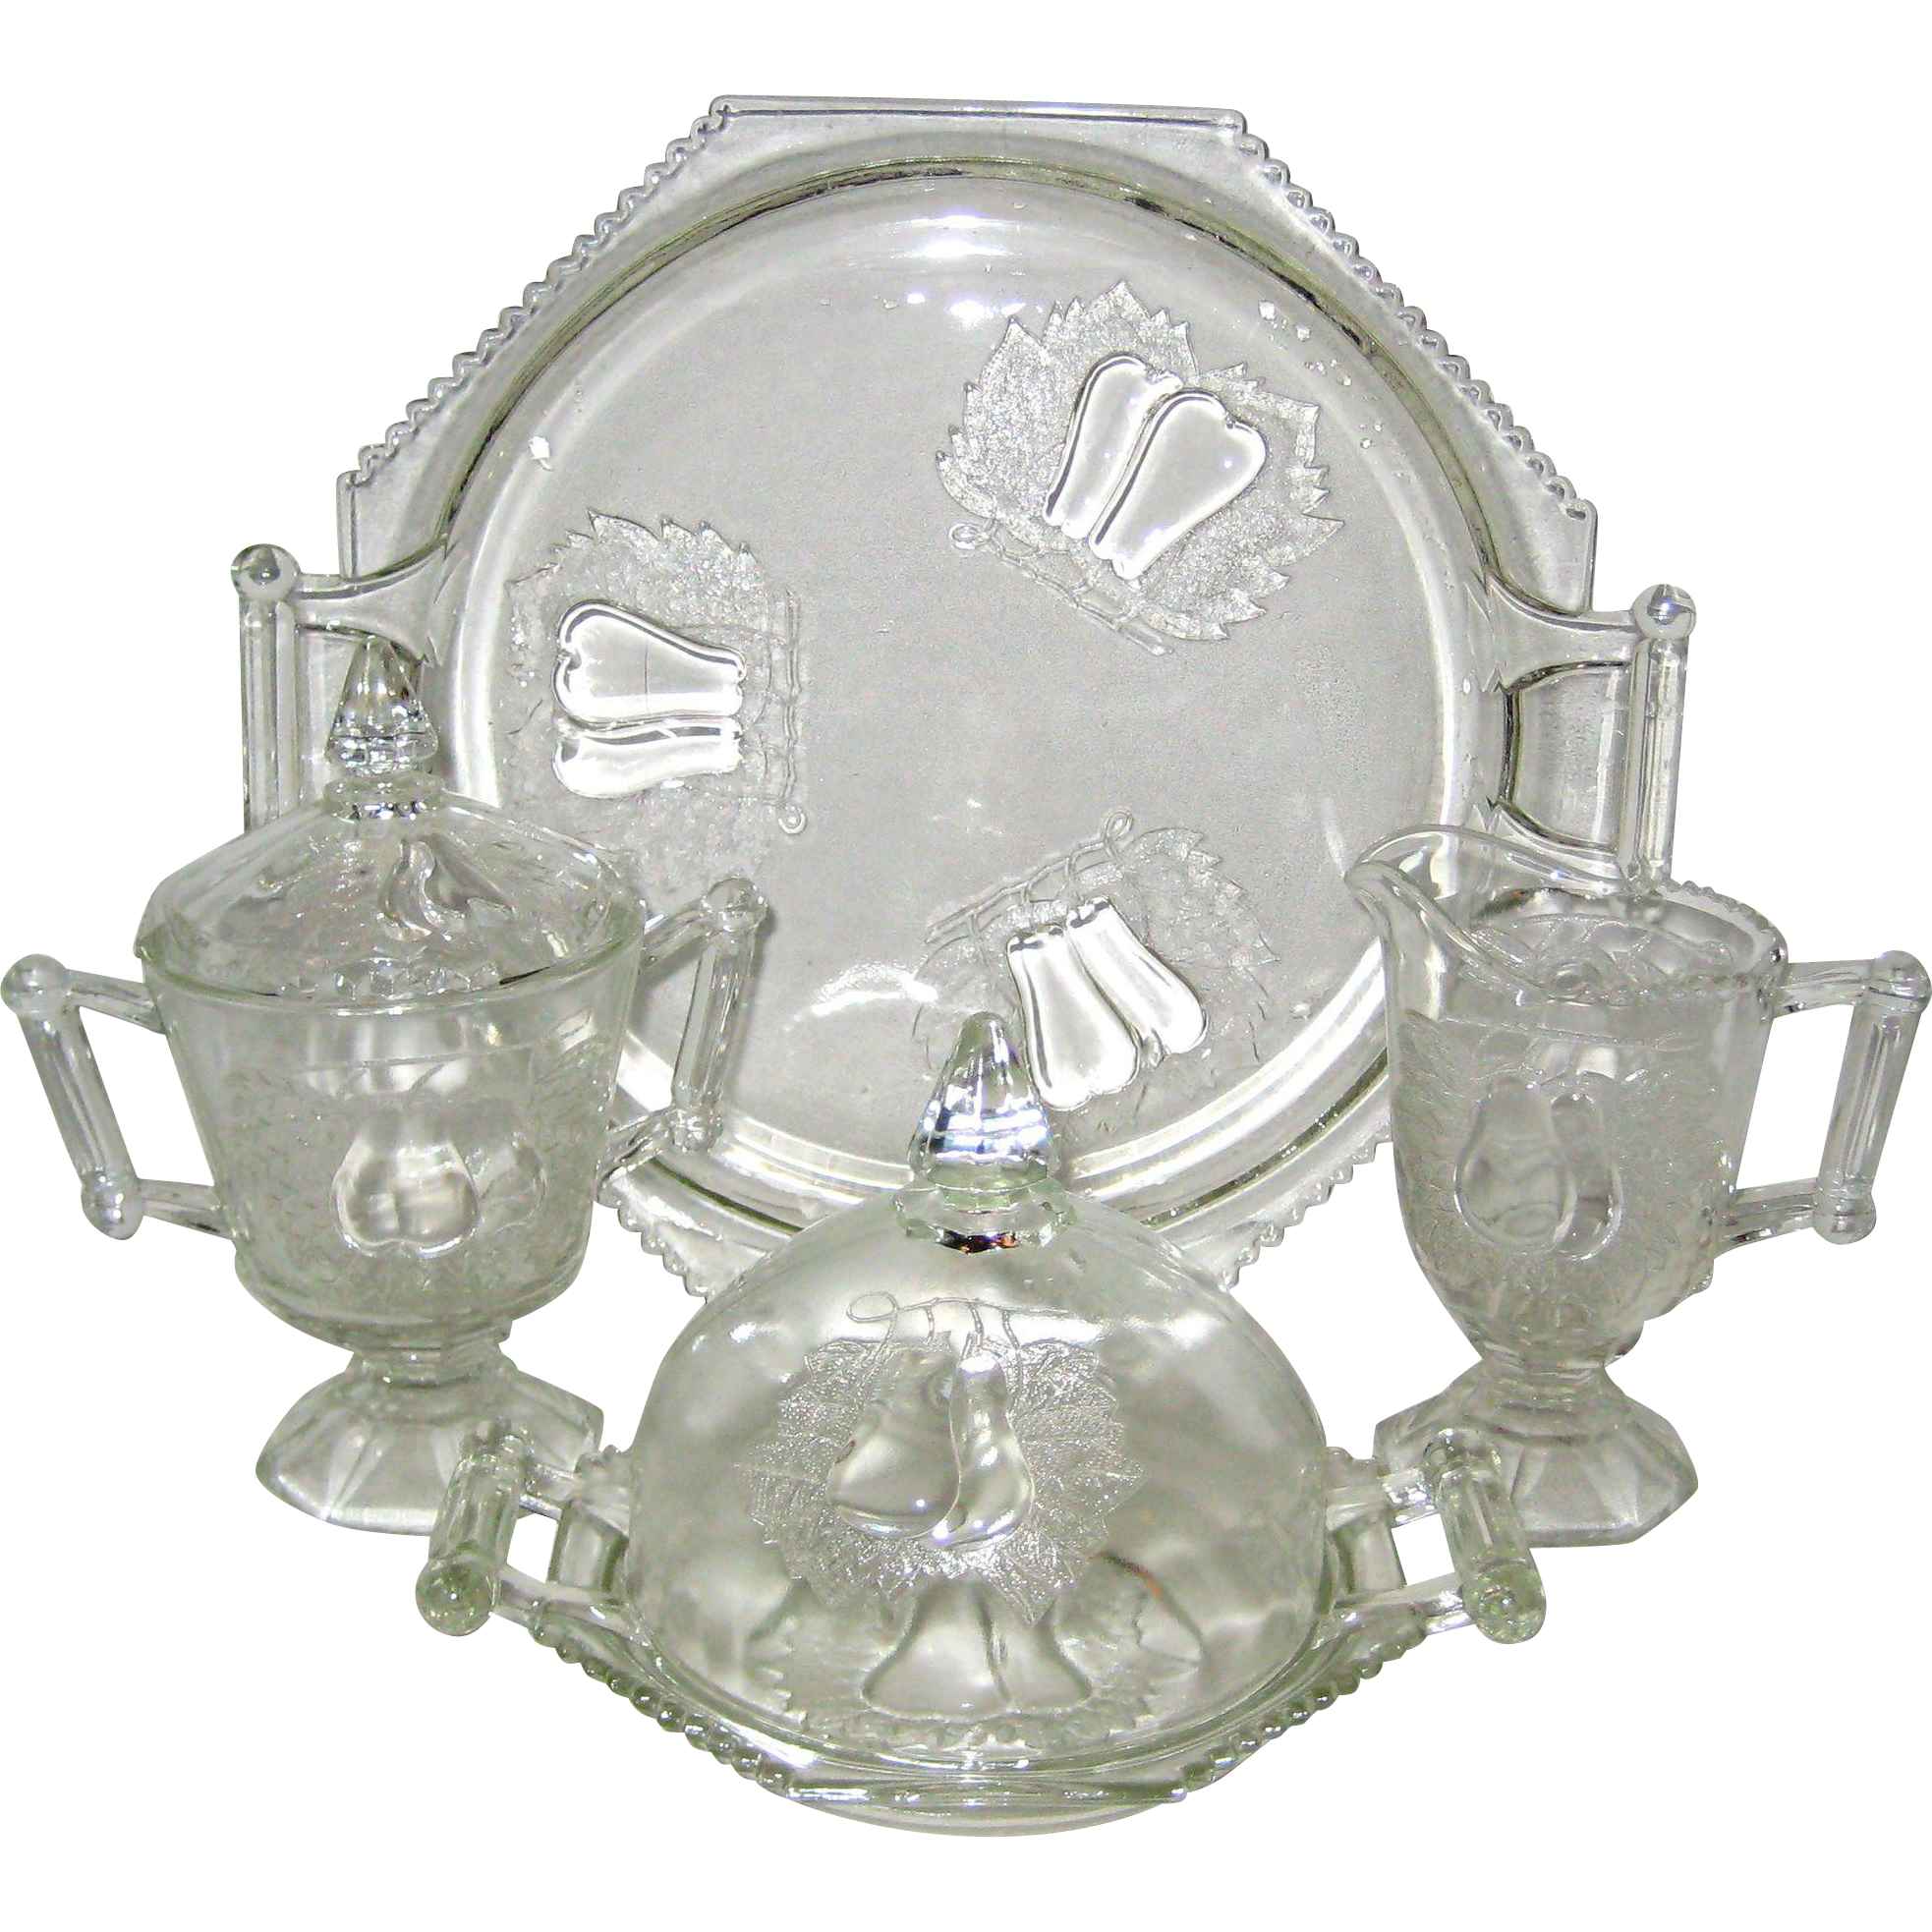 Six Piece Jeanette Glass Baltimore Pear Set - Covered Sugar, Creamer, Cheese or Butter Dome with Lid and Sandwich Tray 1950's - 1960's